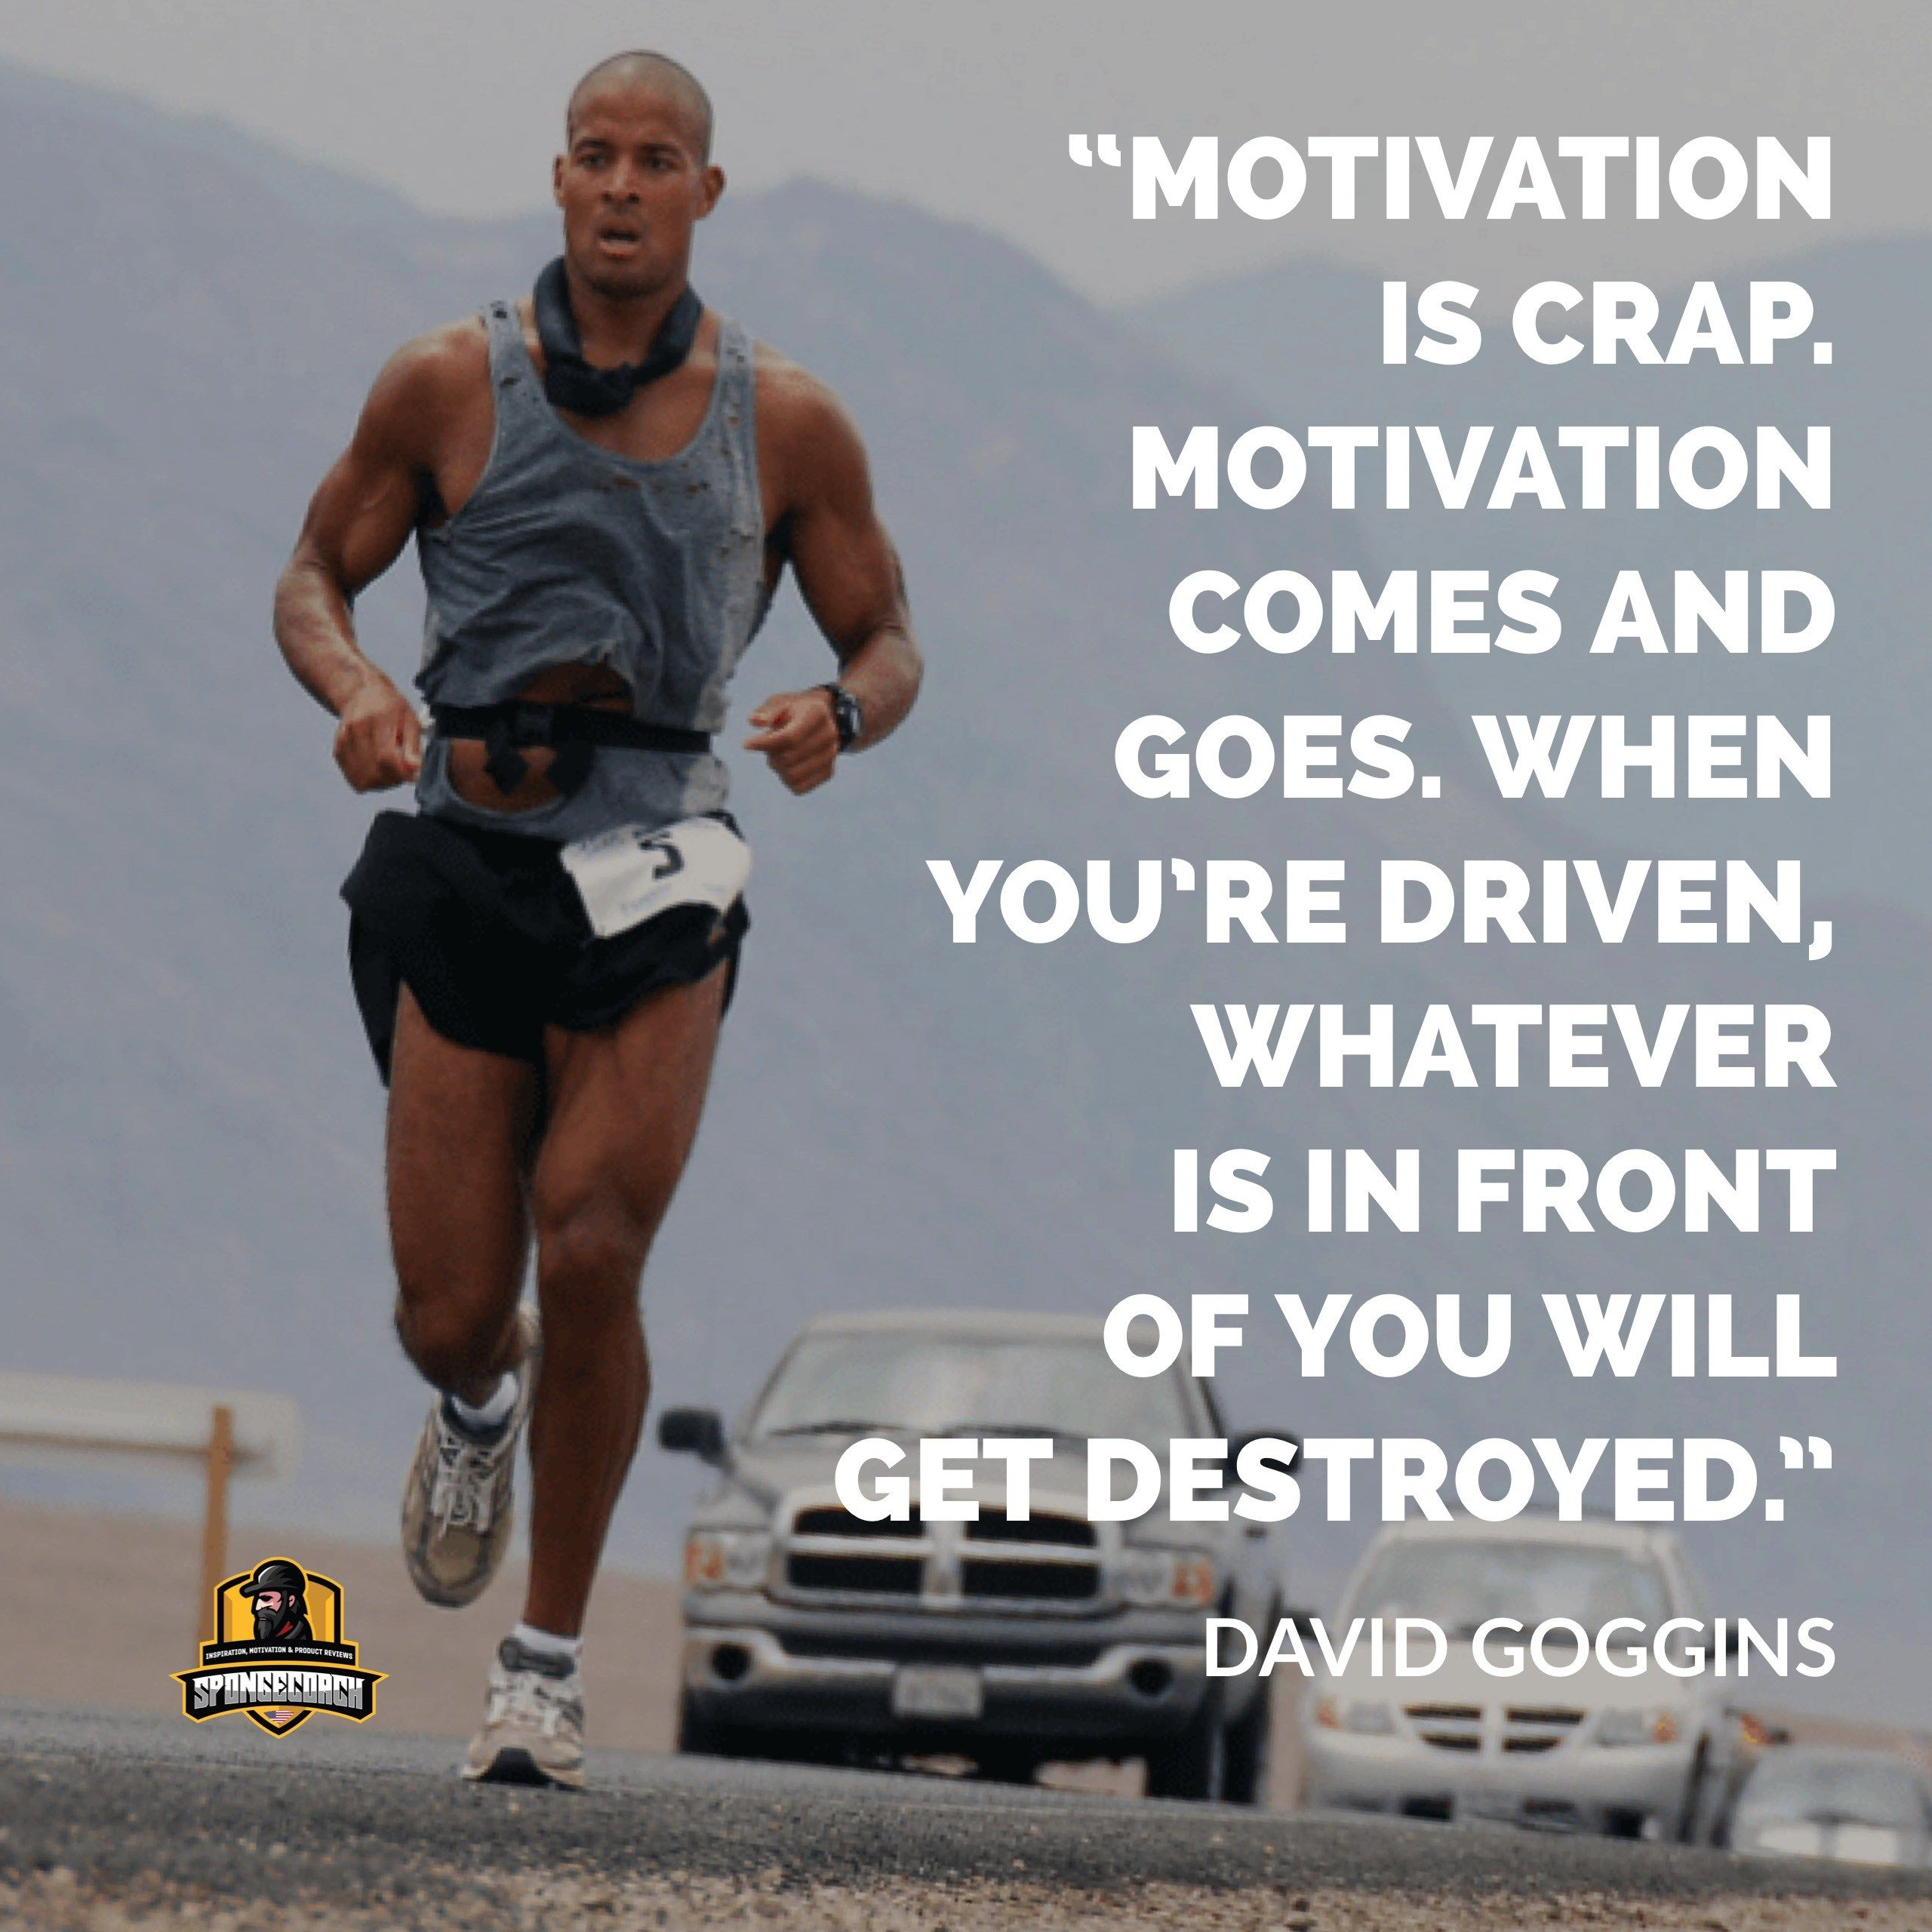 Best David Goggins Quotes On Self Talk And Visualization Self Motivation Quotes Driving Quotes David Goggins